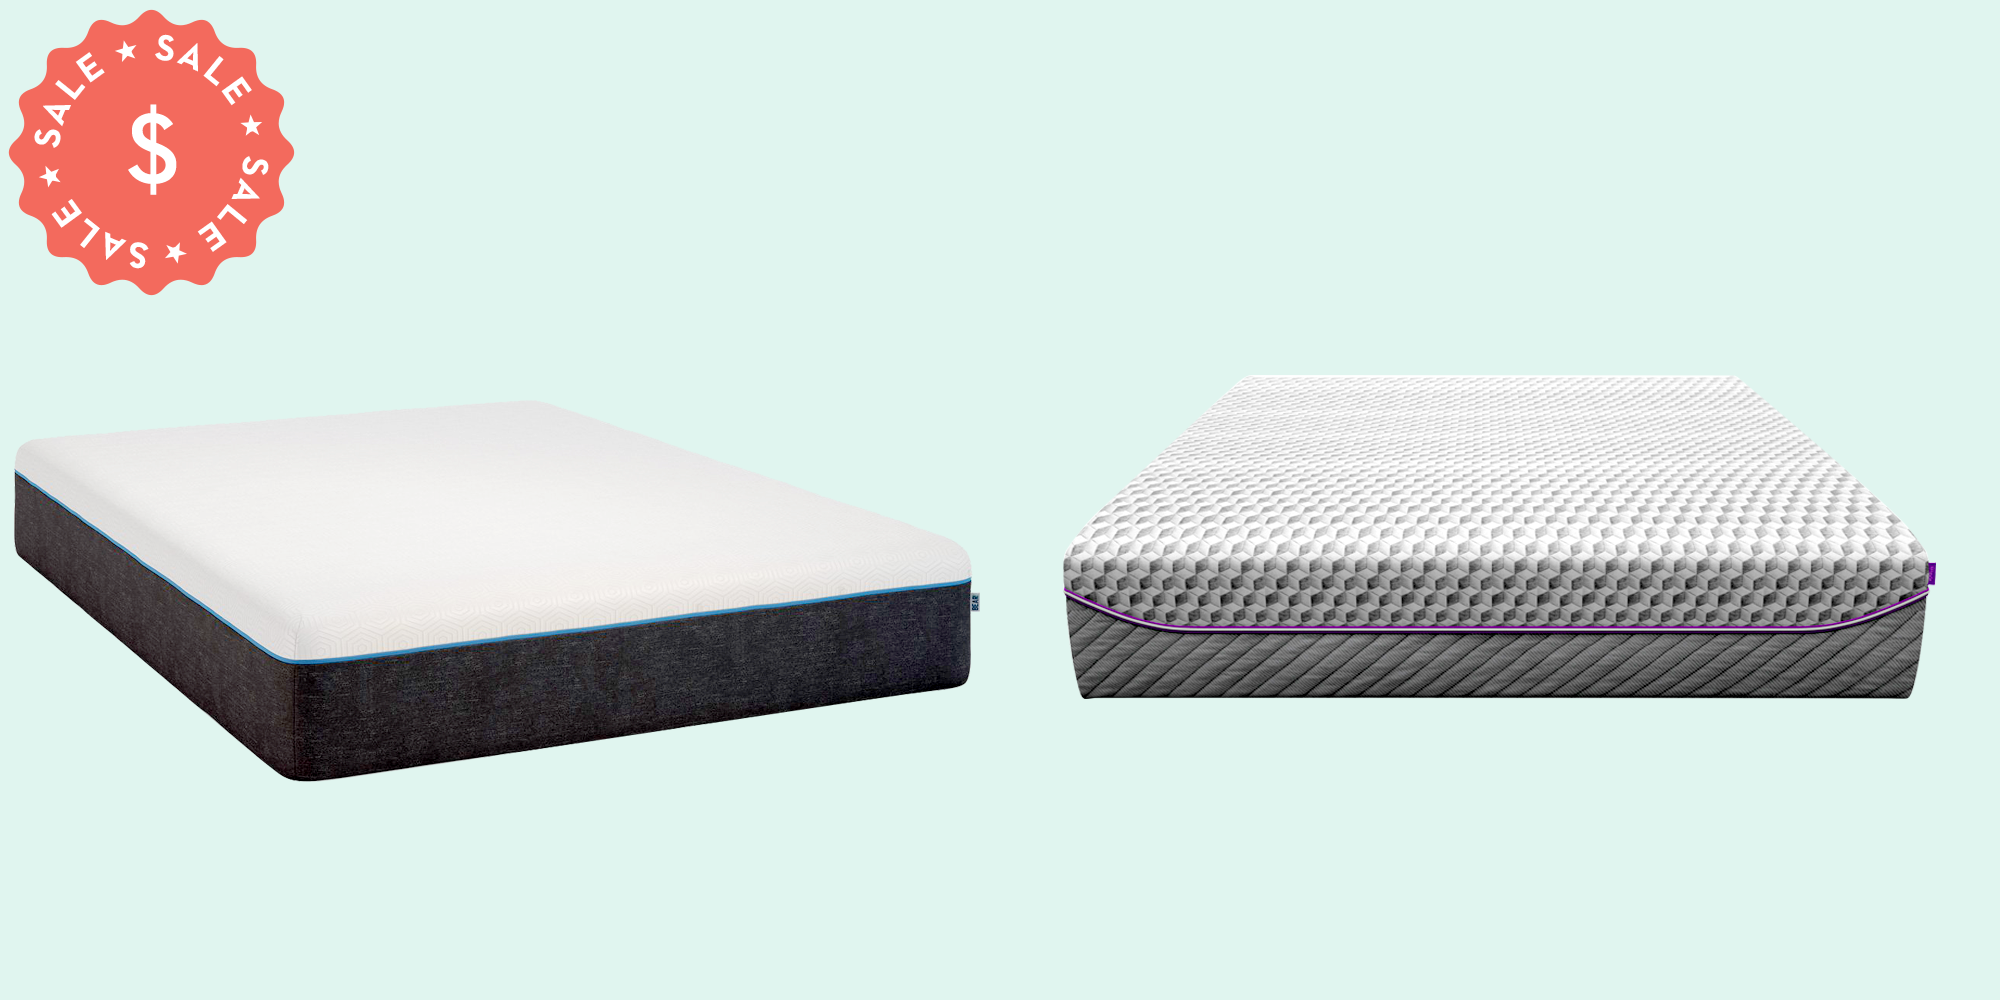 The Best Presidents' Day Mattress Sales of 2020